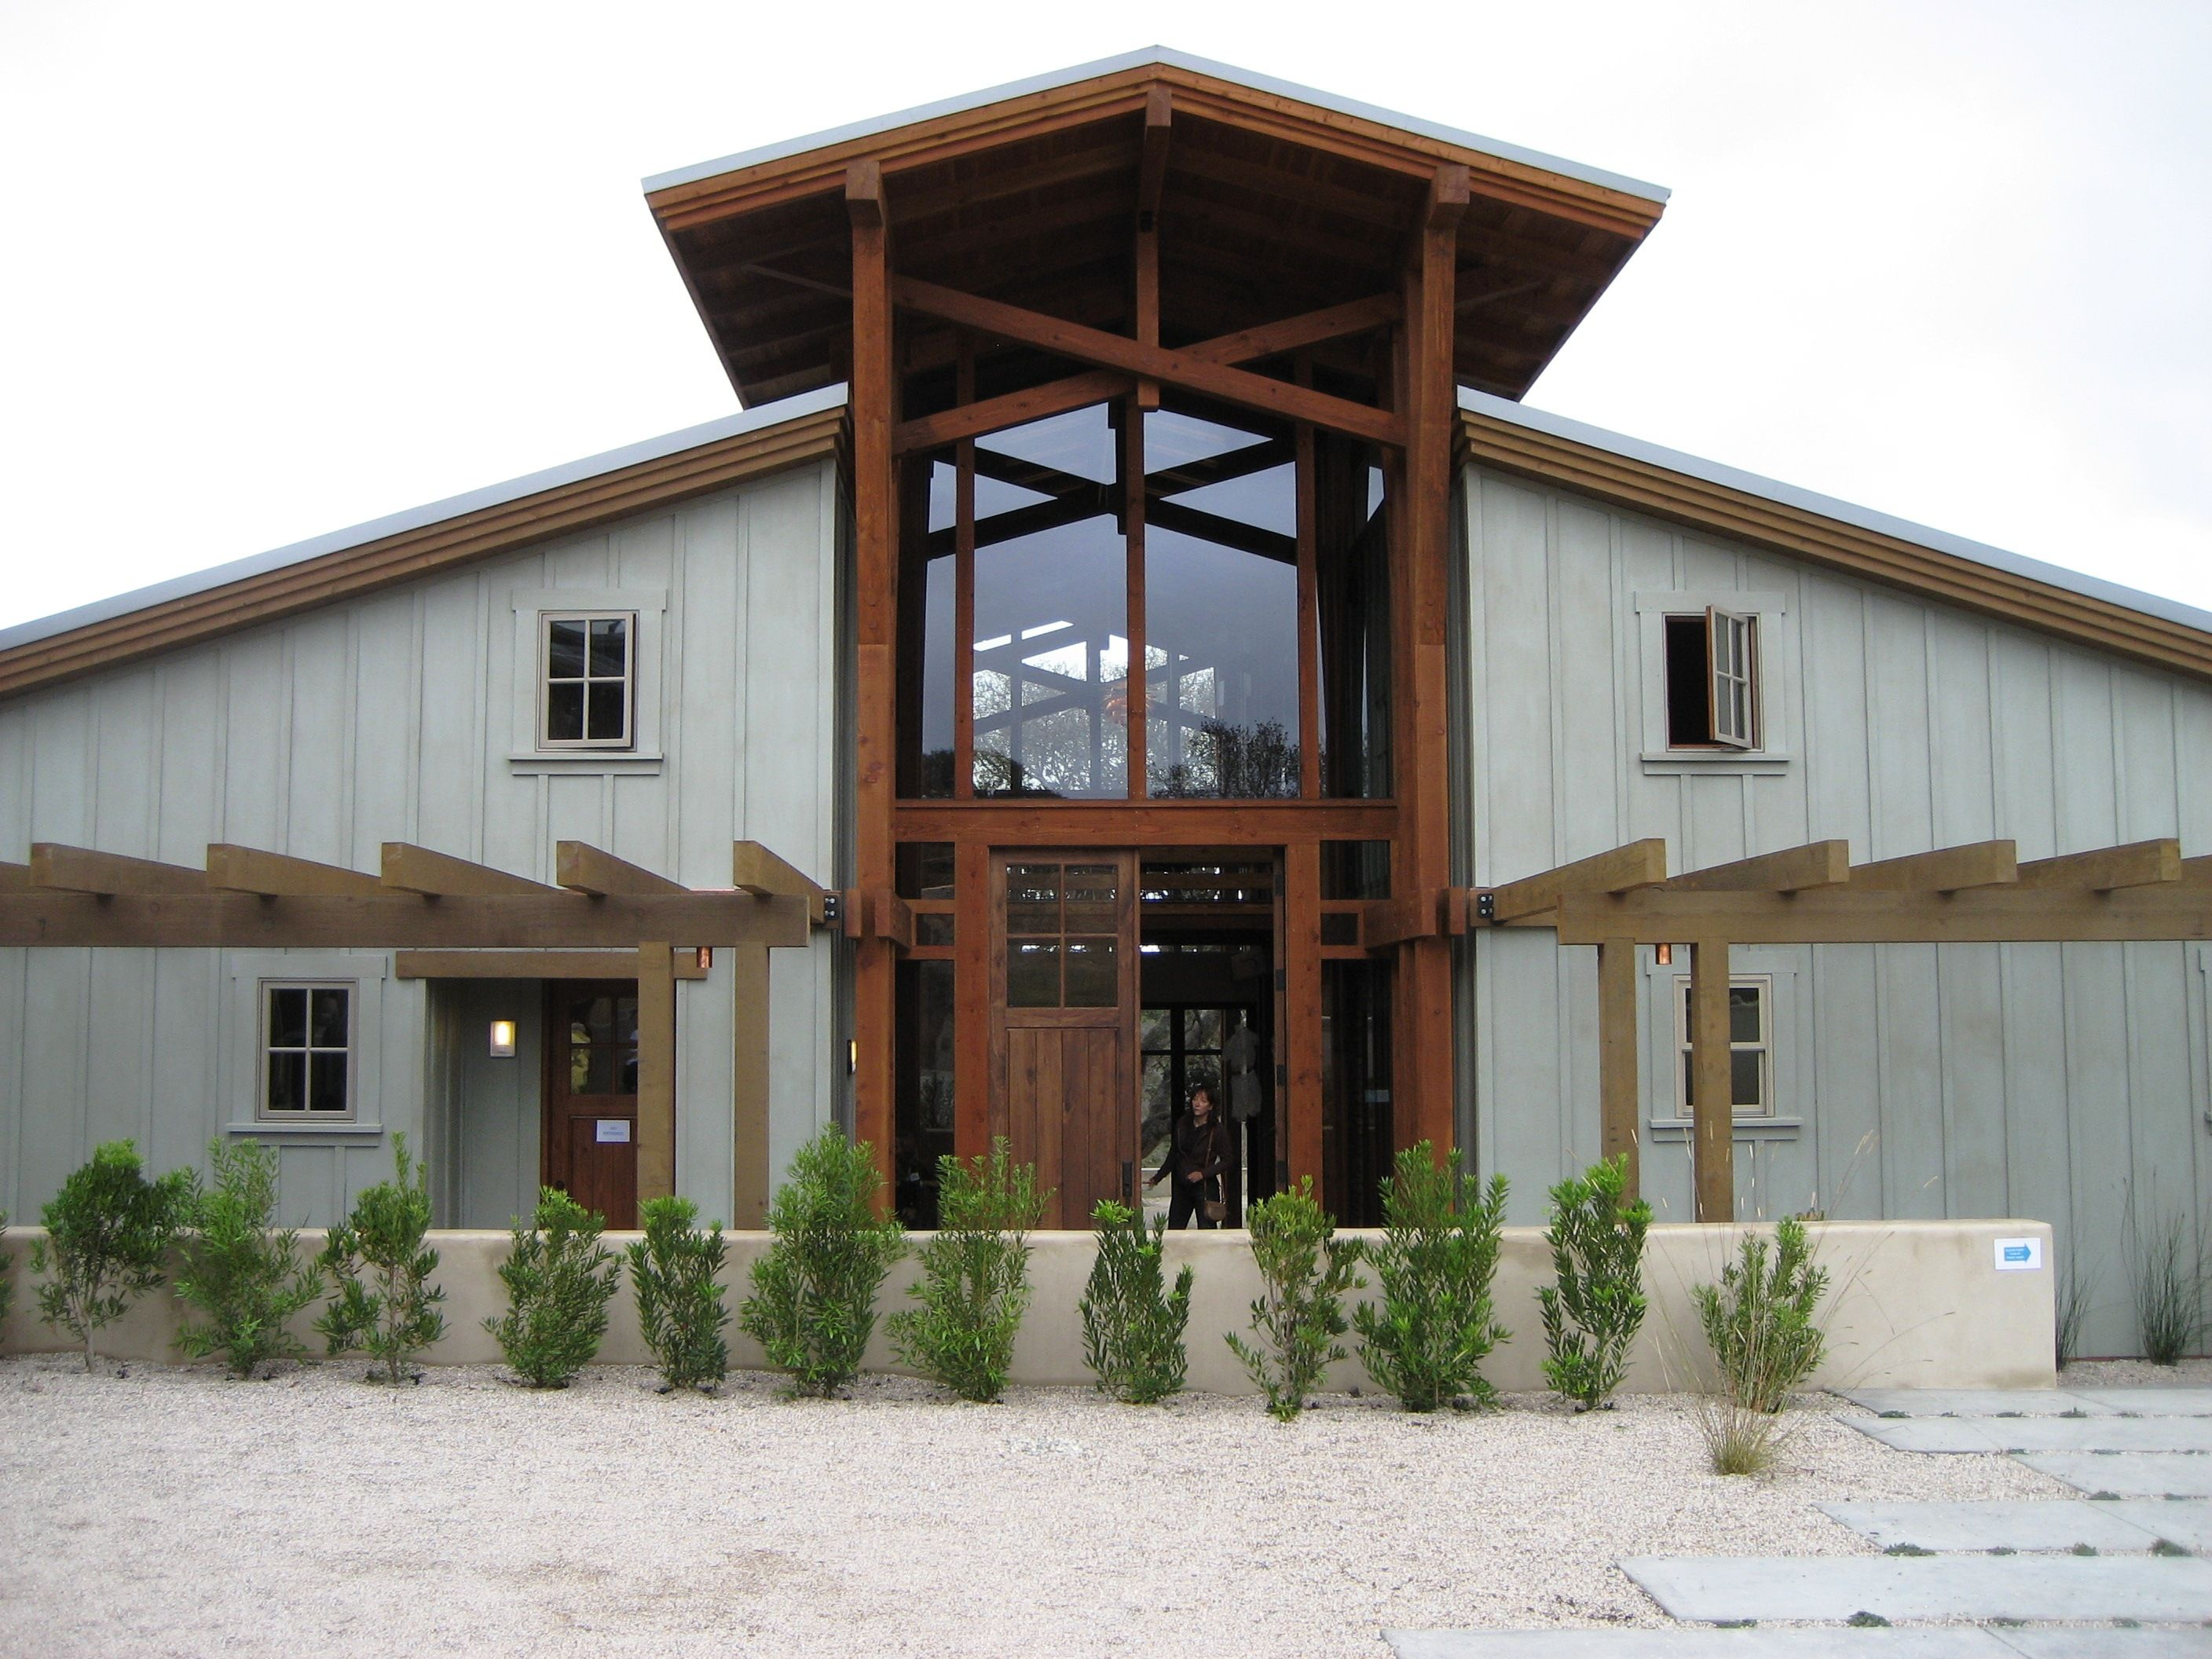 50 best barn home ideas on internet - Metal Building Design Ideas